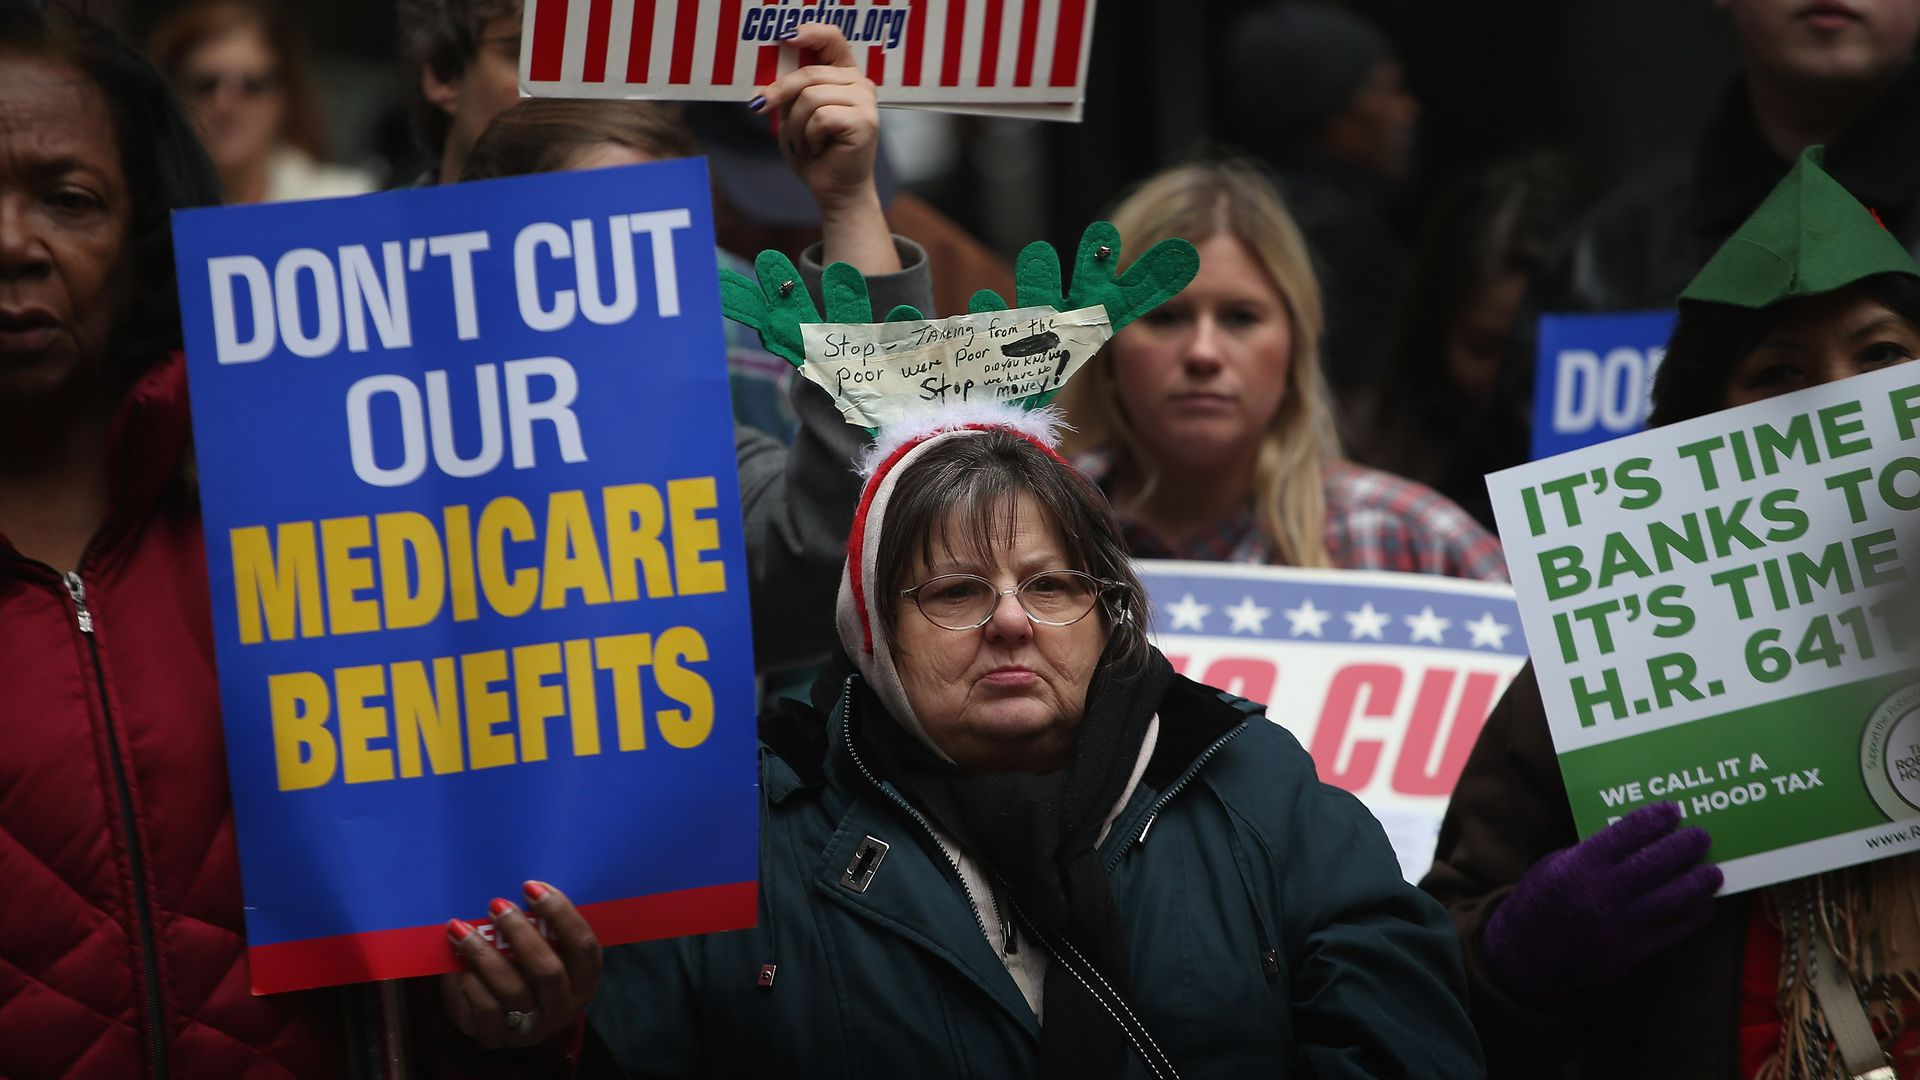 Protests of Medicare cuts occurred in Chicago.